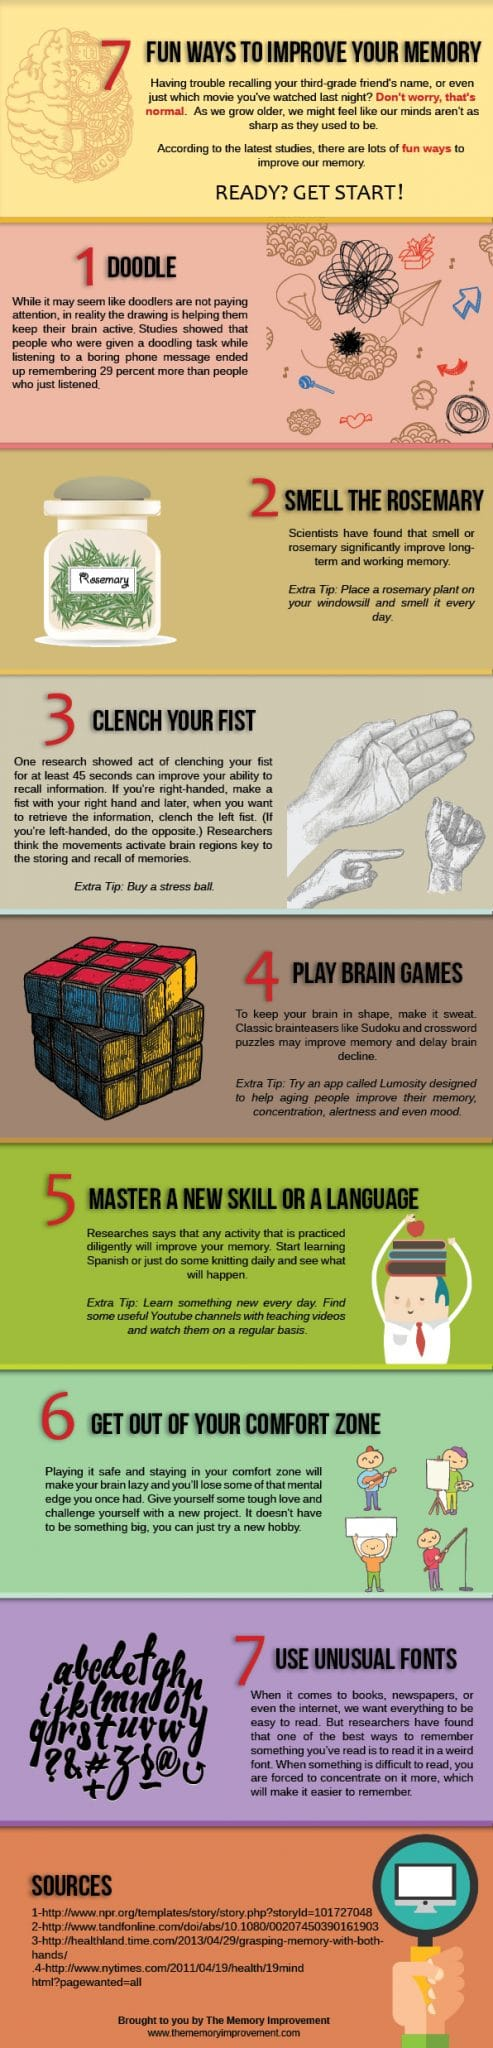 Fun ways to Improve your Memory [Infographic] | ecogreenlove